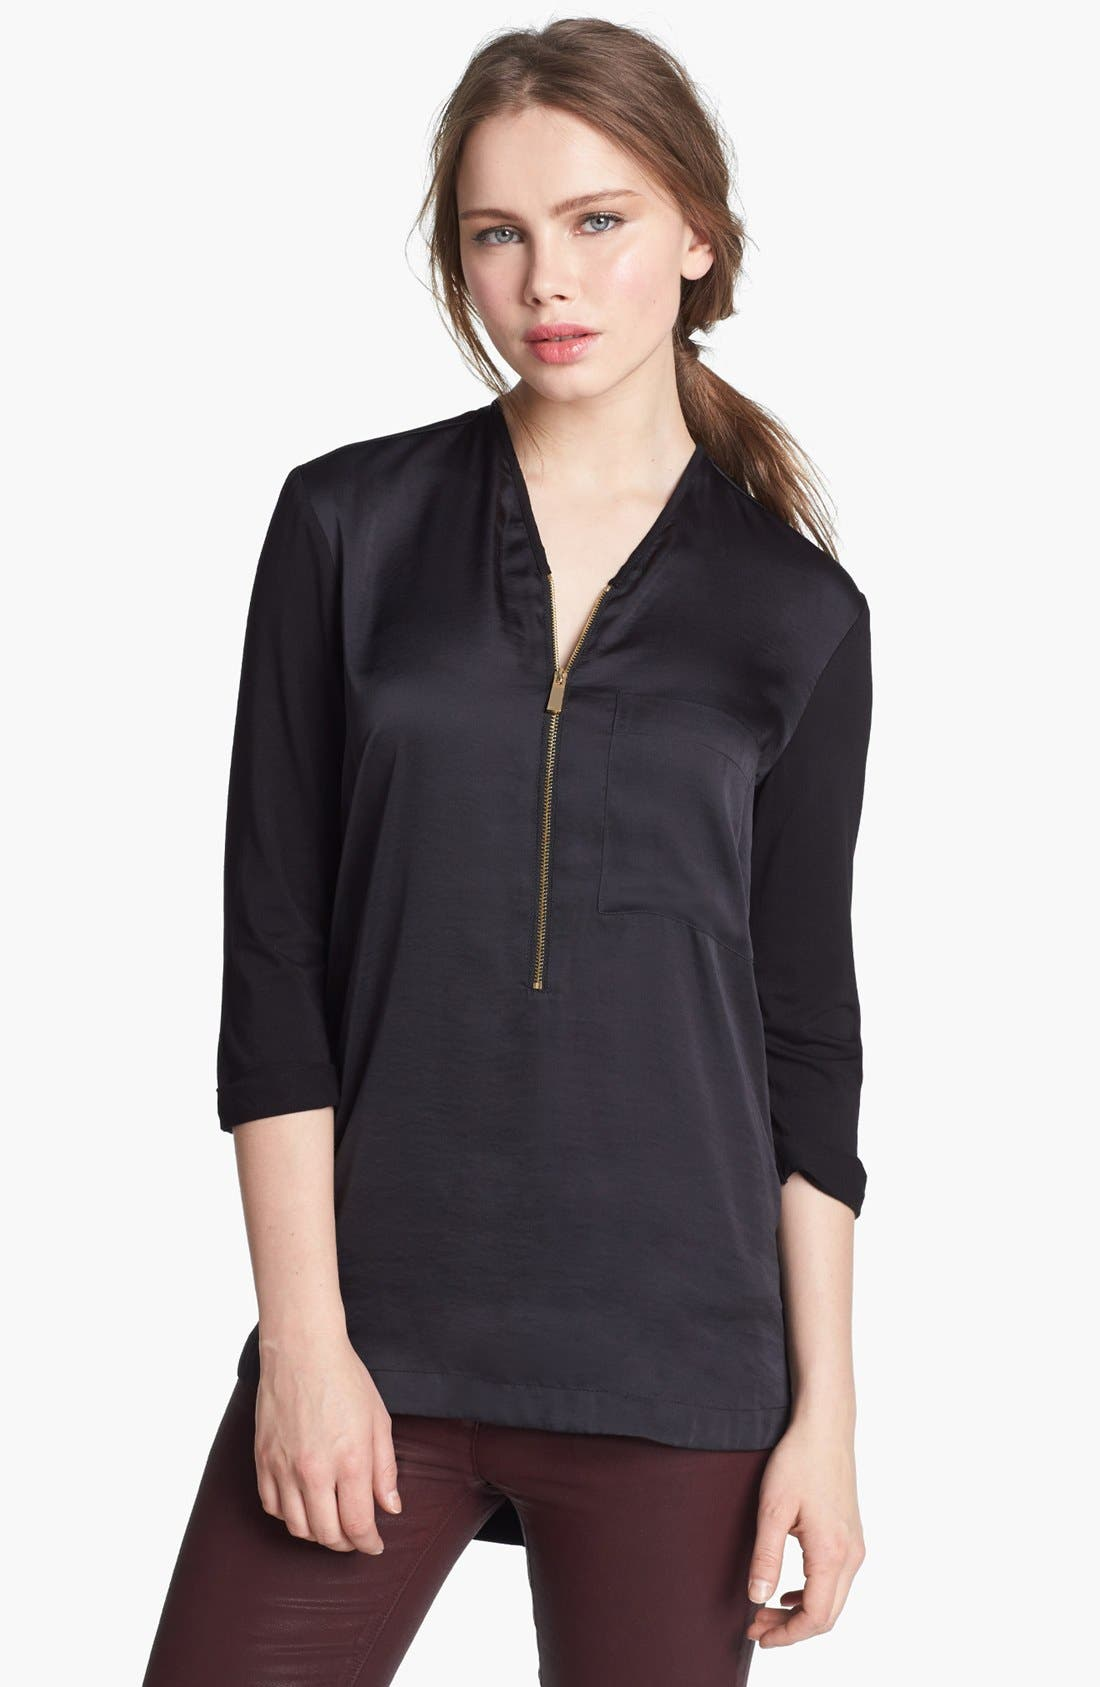 Alternate Image 1 Selected - Vince Camuto Zip Placket Mixed Media Top (Online Only)